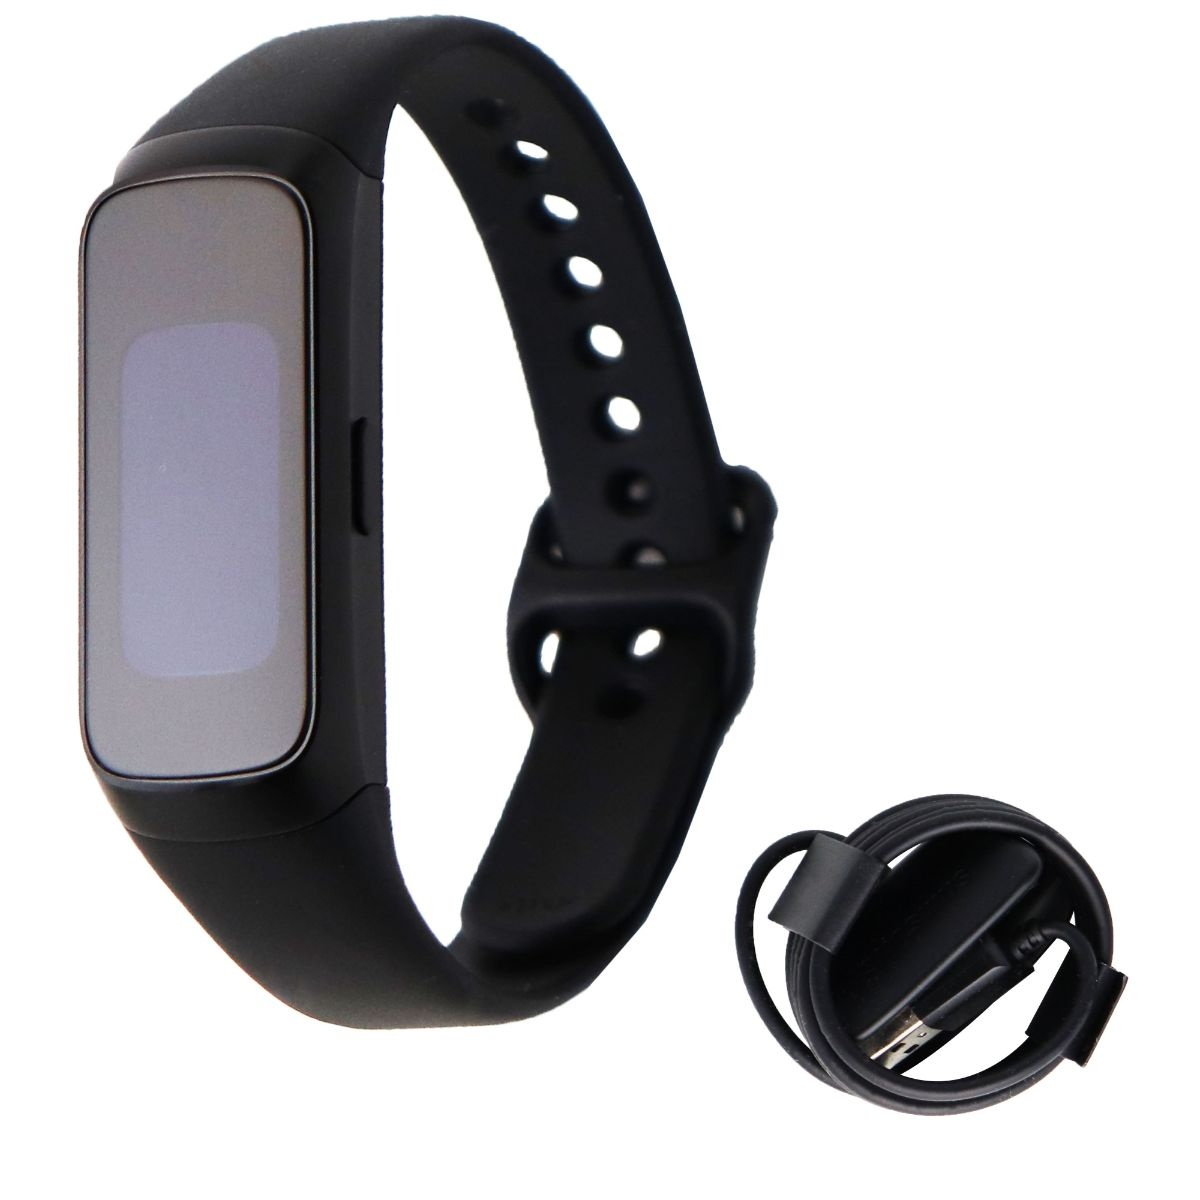 Samsung Galaxy Fit Bluetooth Fitness Tracker - Black SM-R370NZKAXAR - (US)